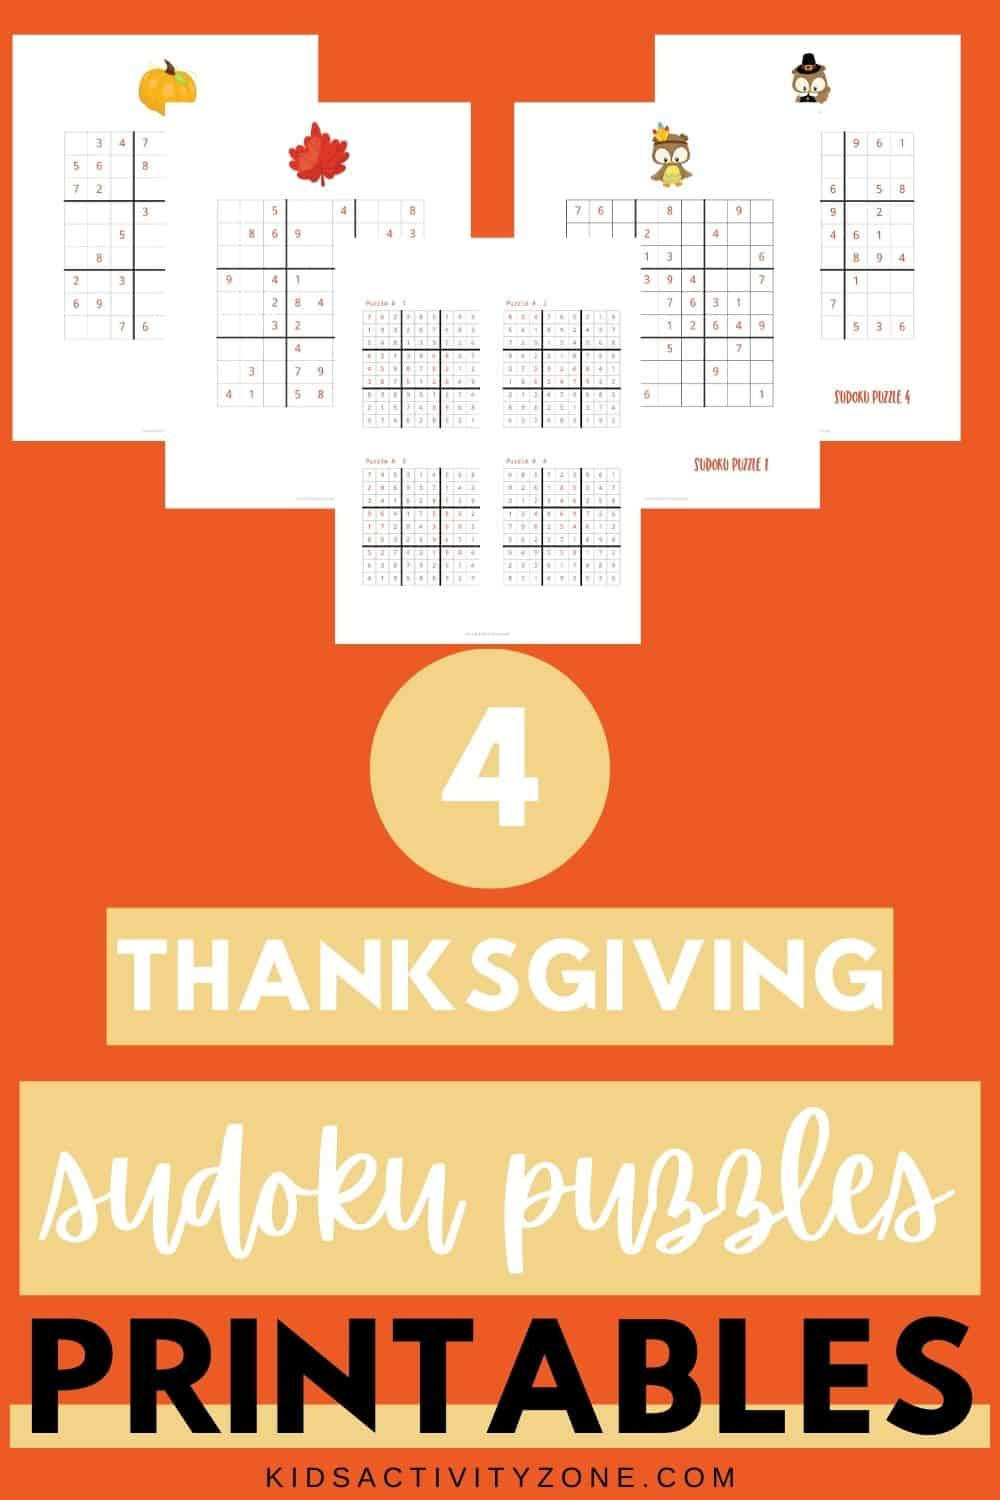 Free printable sheets for Thanksgiving Sudoku plus answer keys! This is a fun activity for kids parties or a great way to entertain your guests at your Thanksgiving holiday. Set a time and make it a competition to see who wins first!